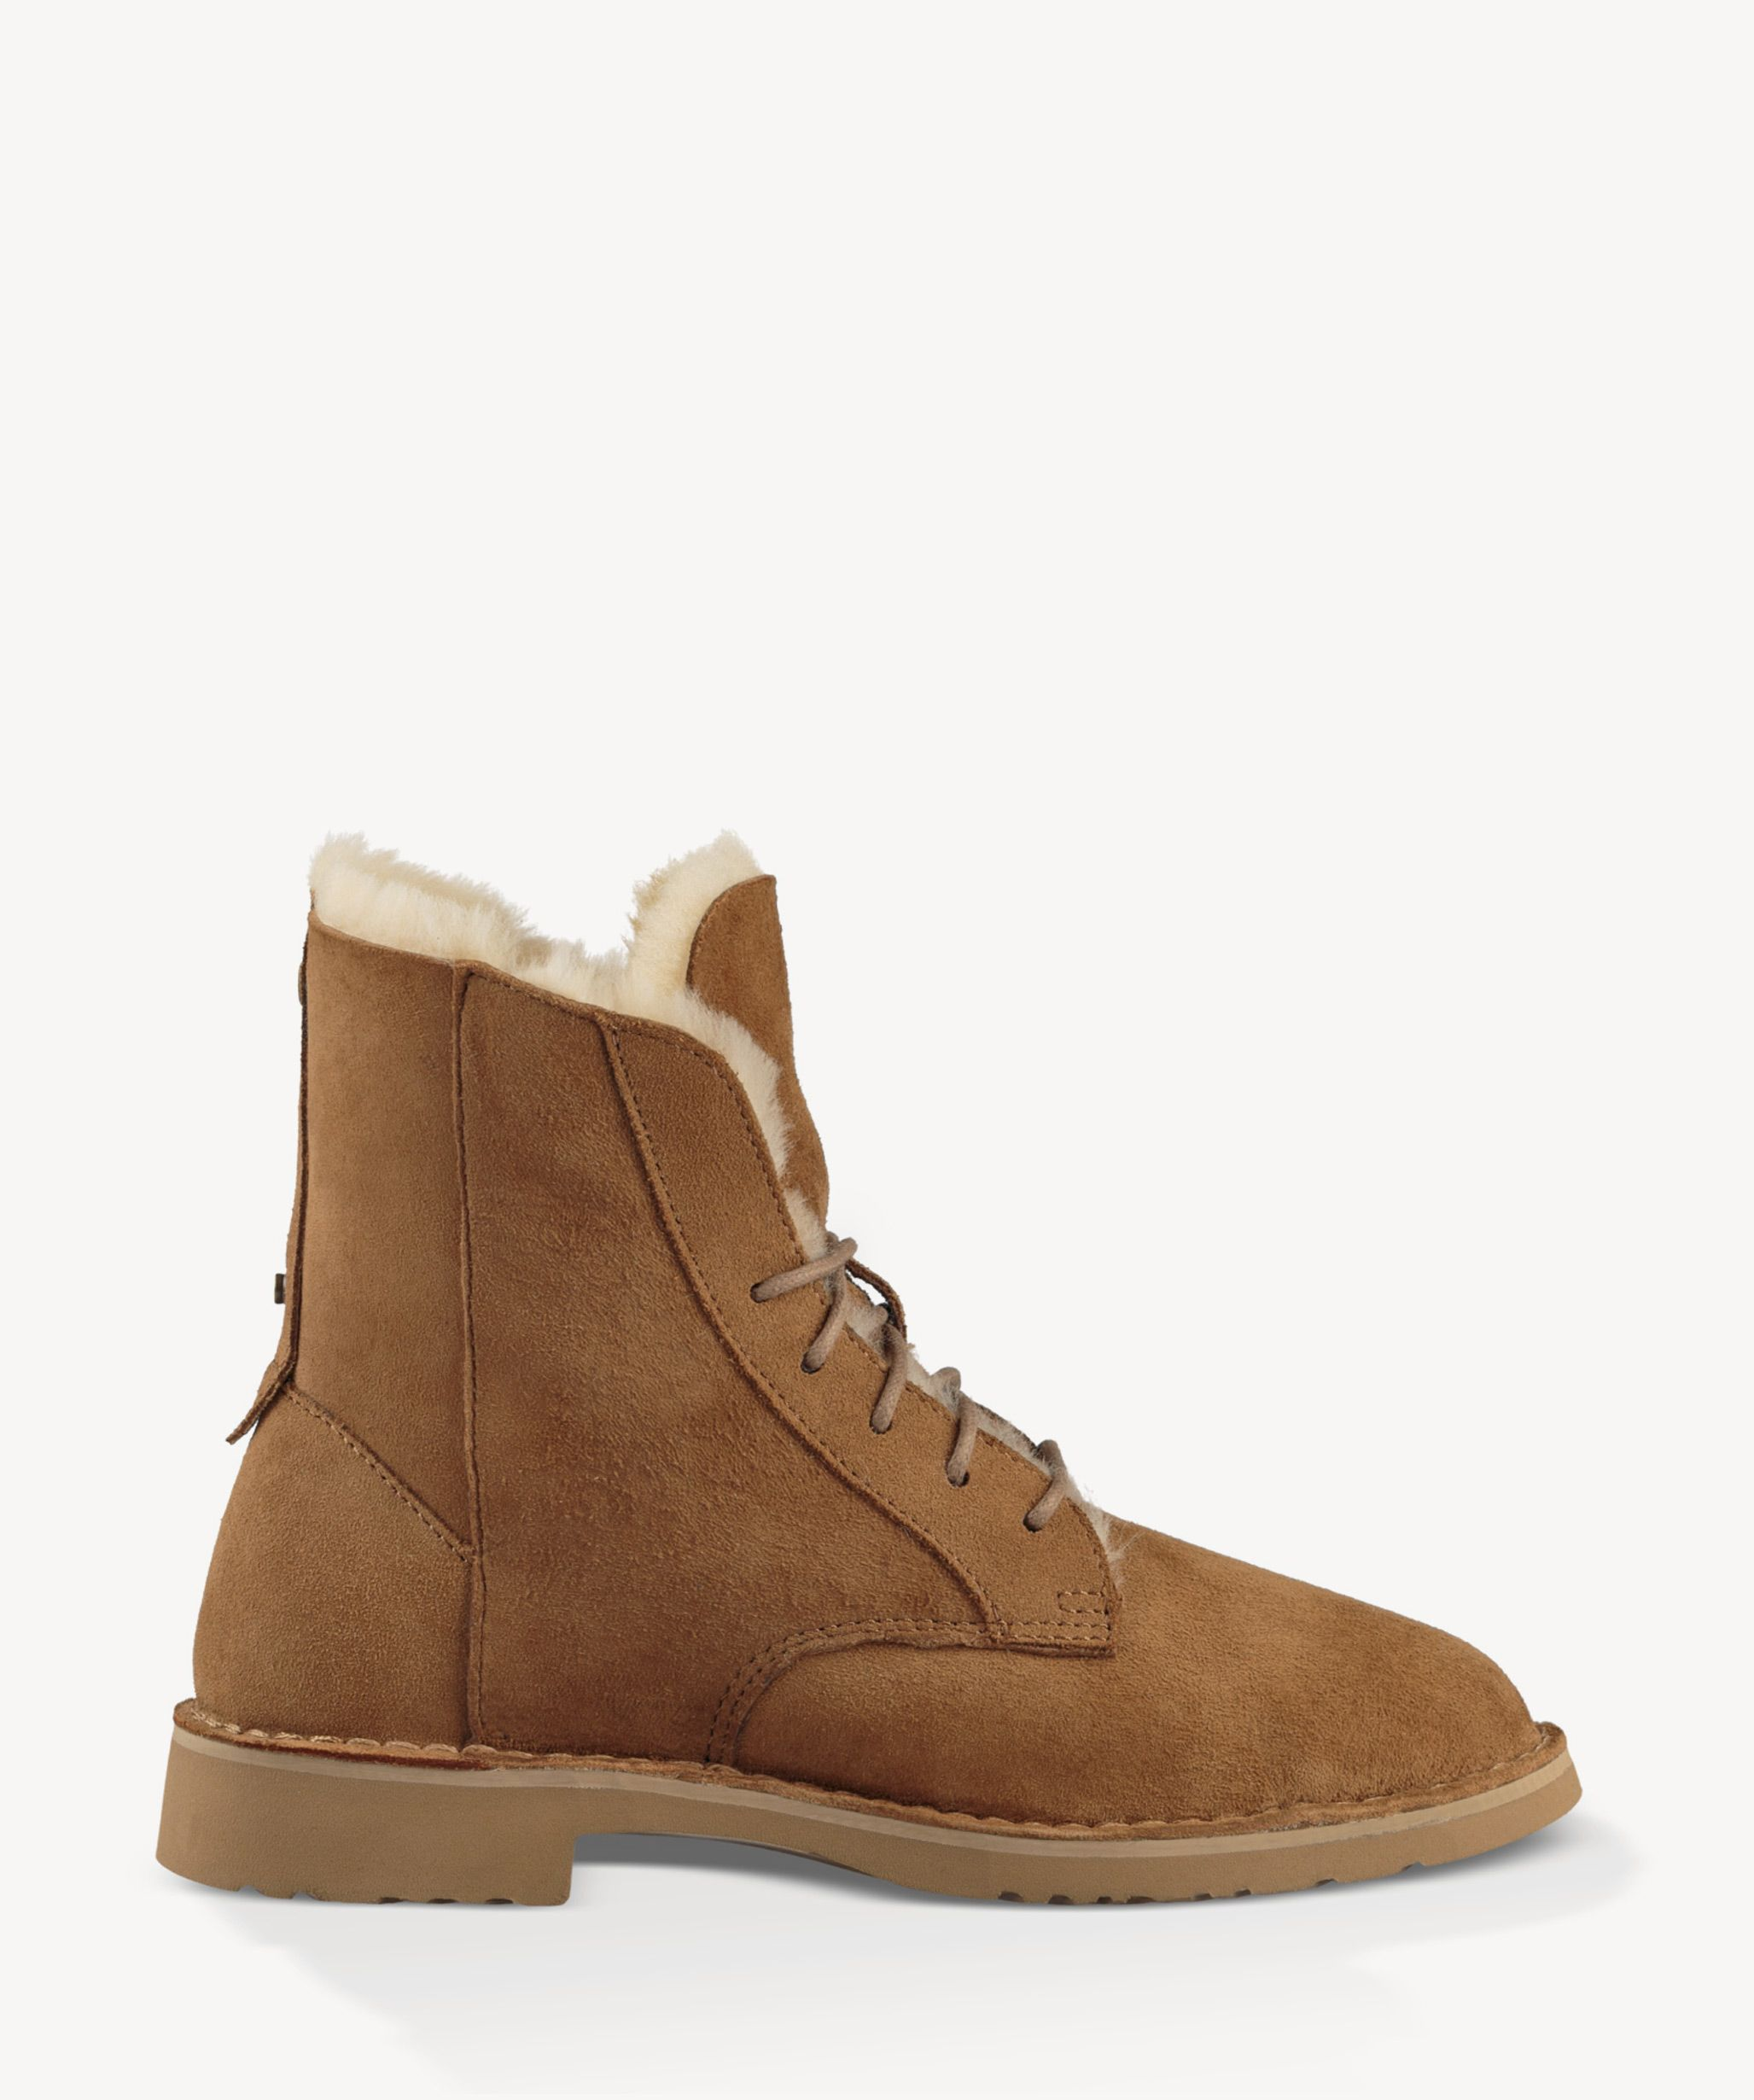 a273d9f48fc Quincy | Products | Uggs, Boots, Sheepskin boots